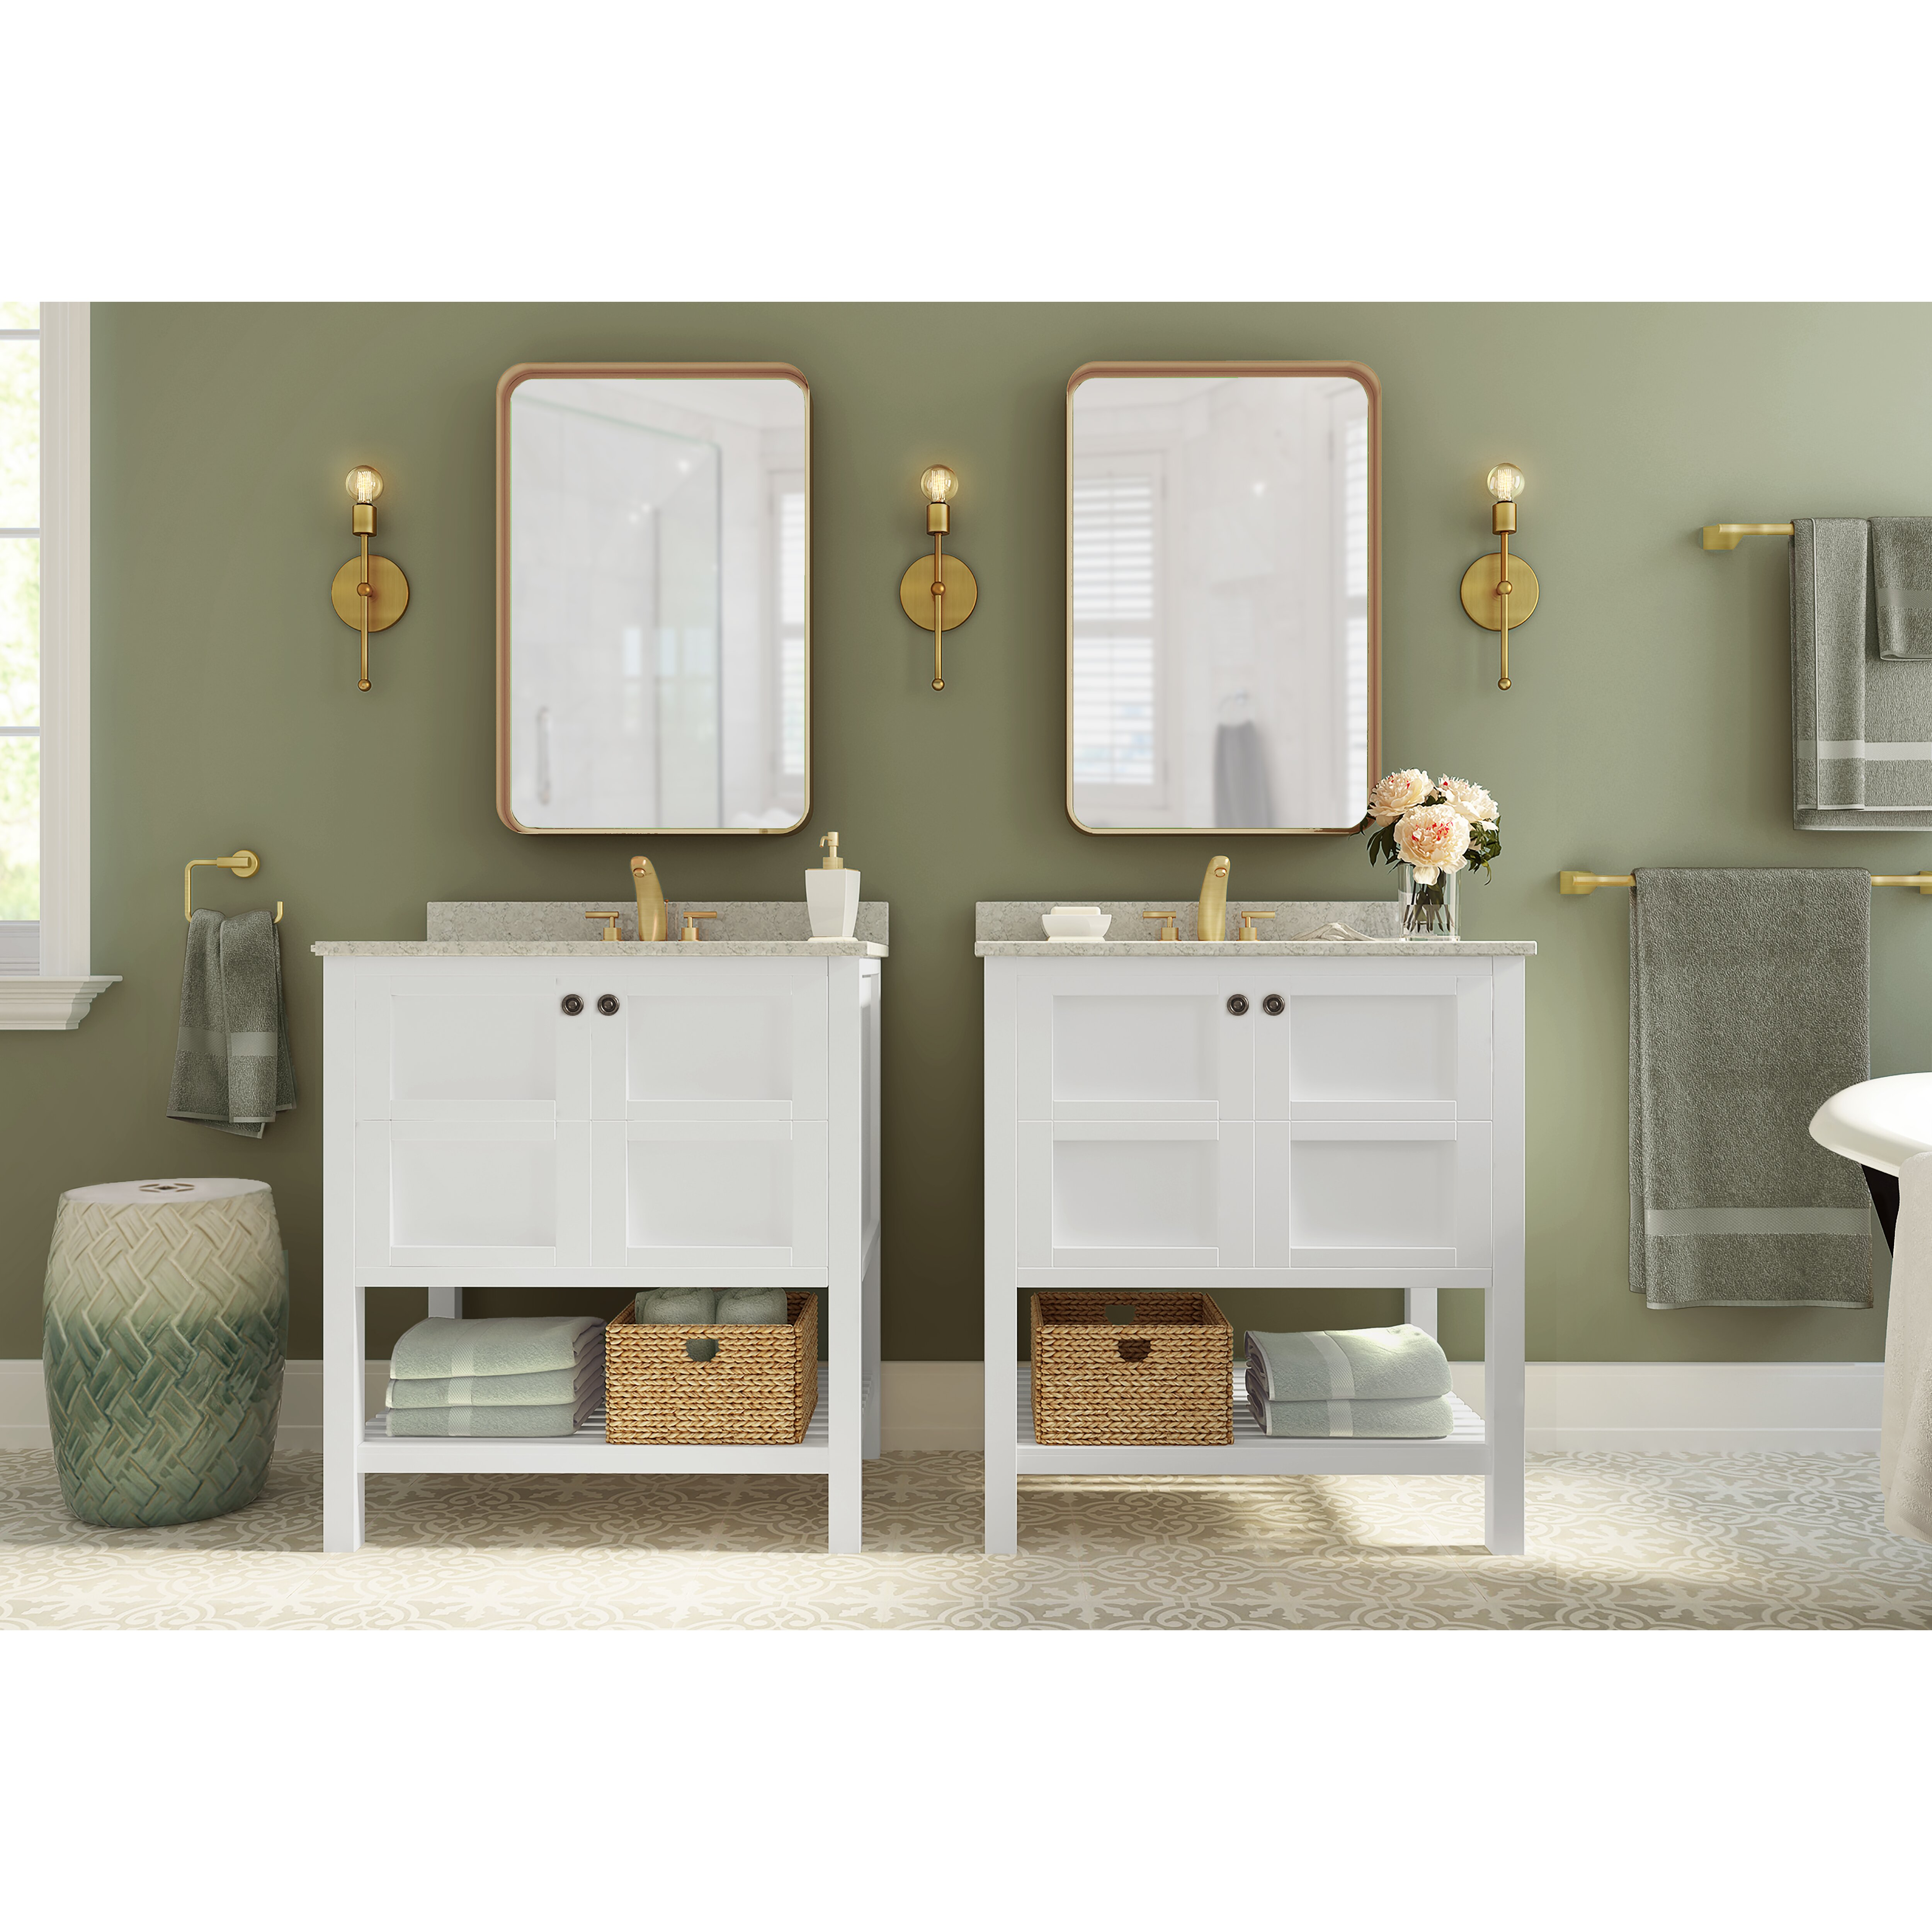 Bathroom Single Vanity Latitude Run Peabody 30 Single Vanity Set Reviews Wayfair